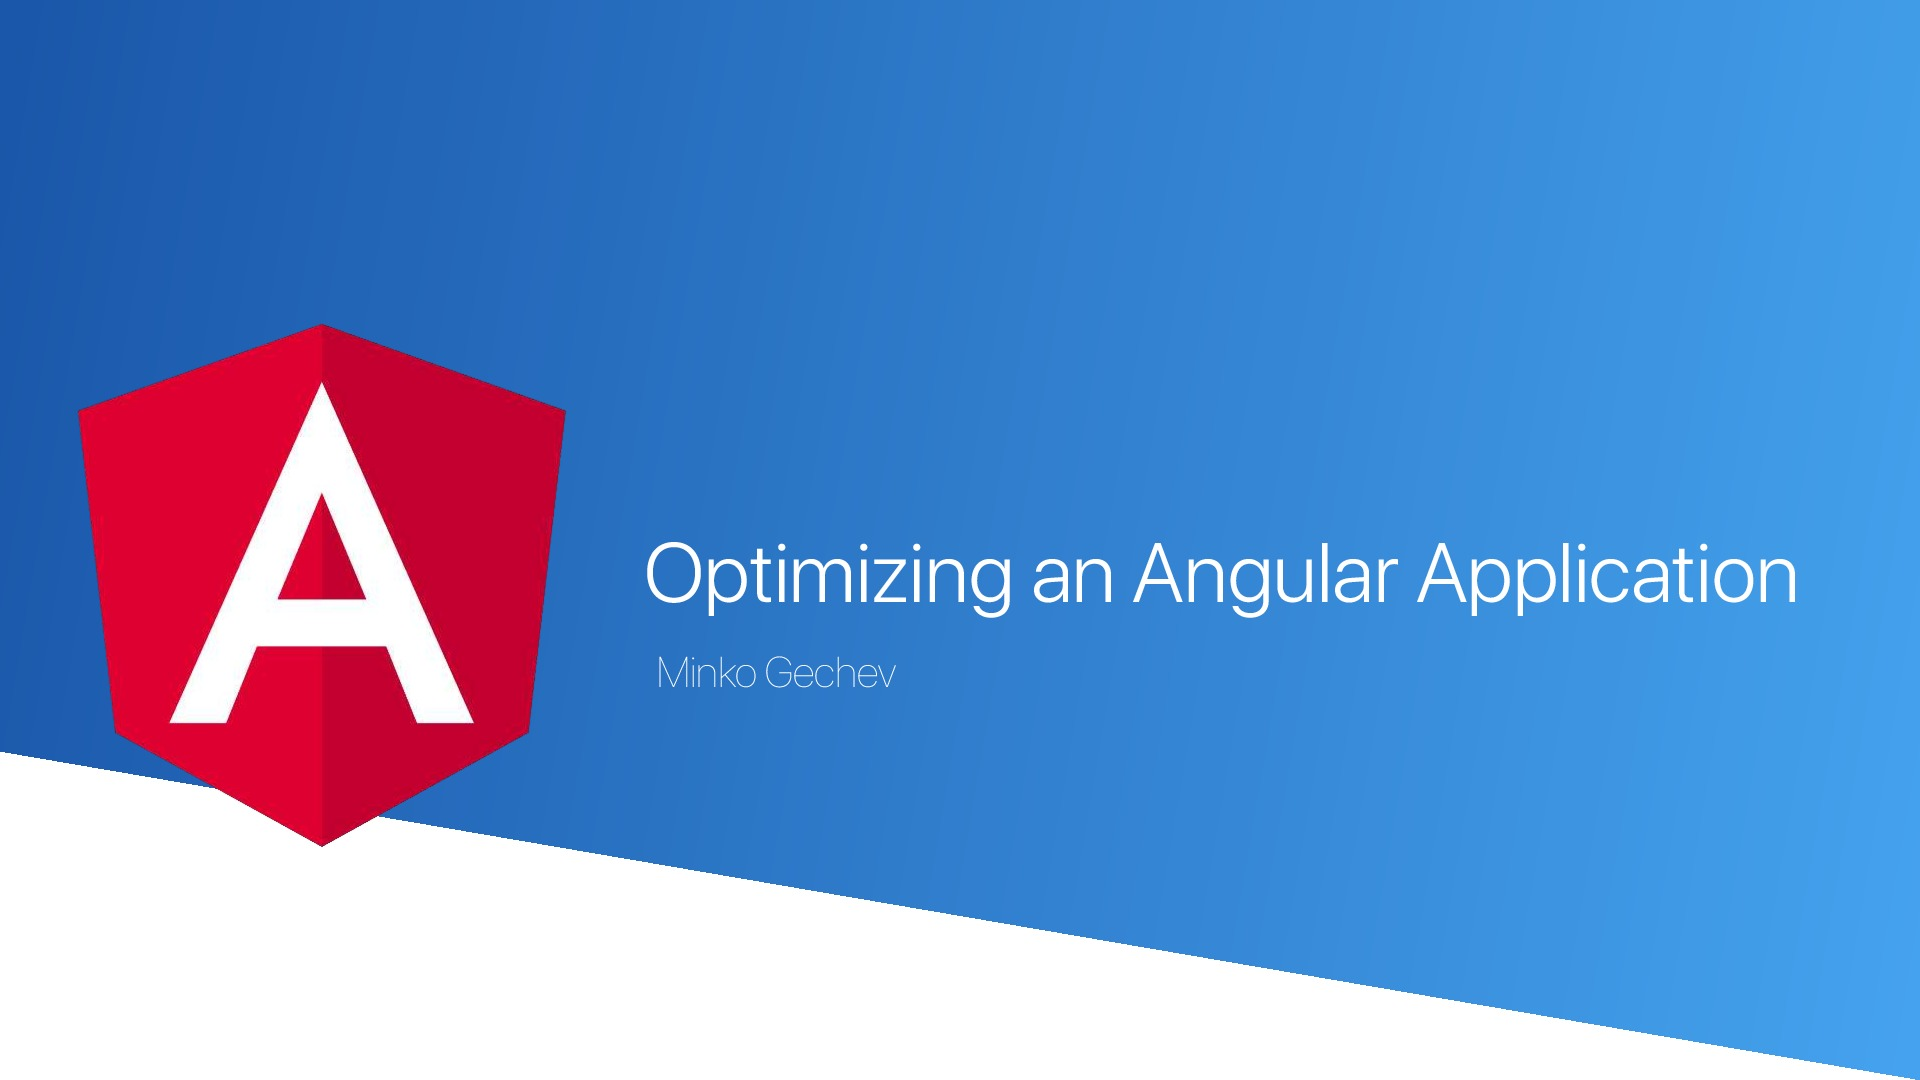 Optimizing an Angular Application